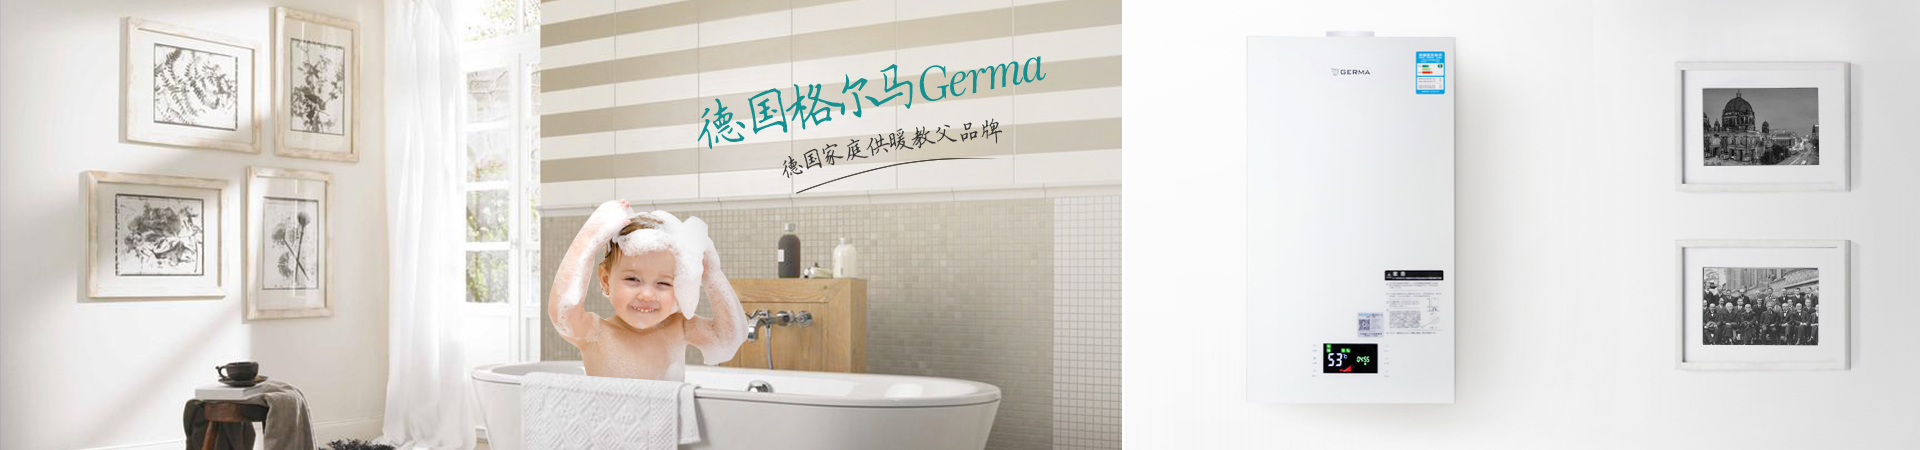 http://www.geerma.com.cn/data/upload/201912/20191219093915_205.jpg